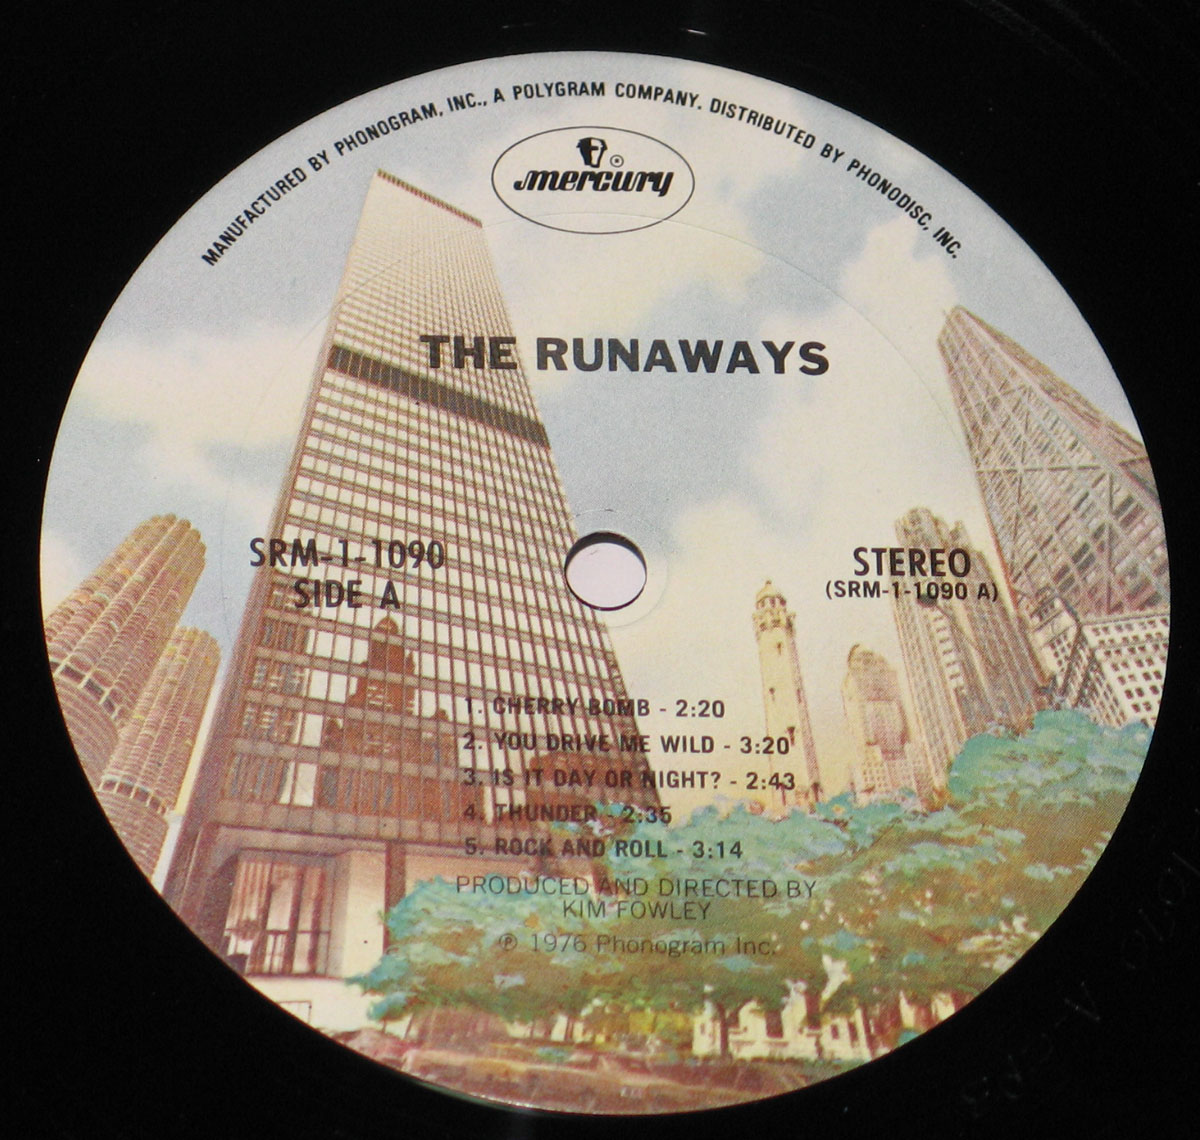 High Resolution Photo #6 RUNAWAYS The Runaways Self-titled Vinyl Record